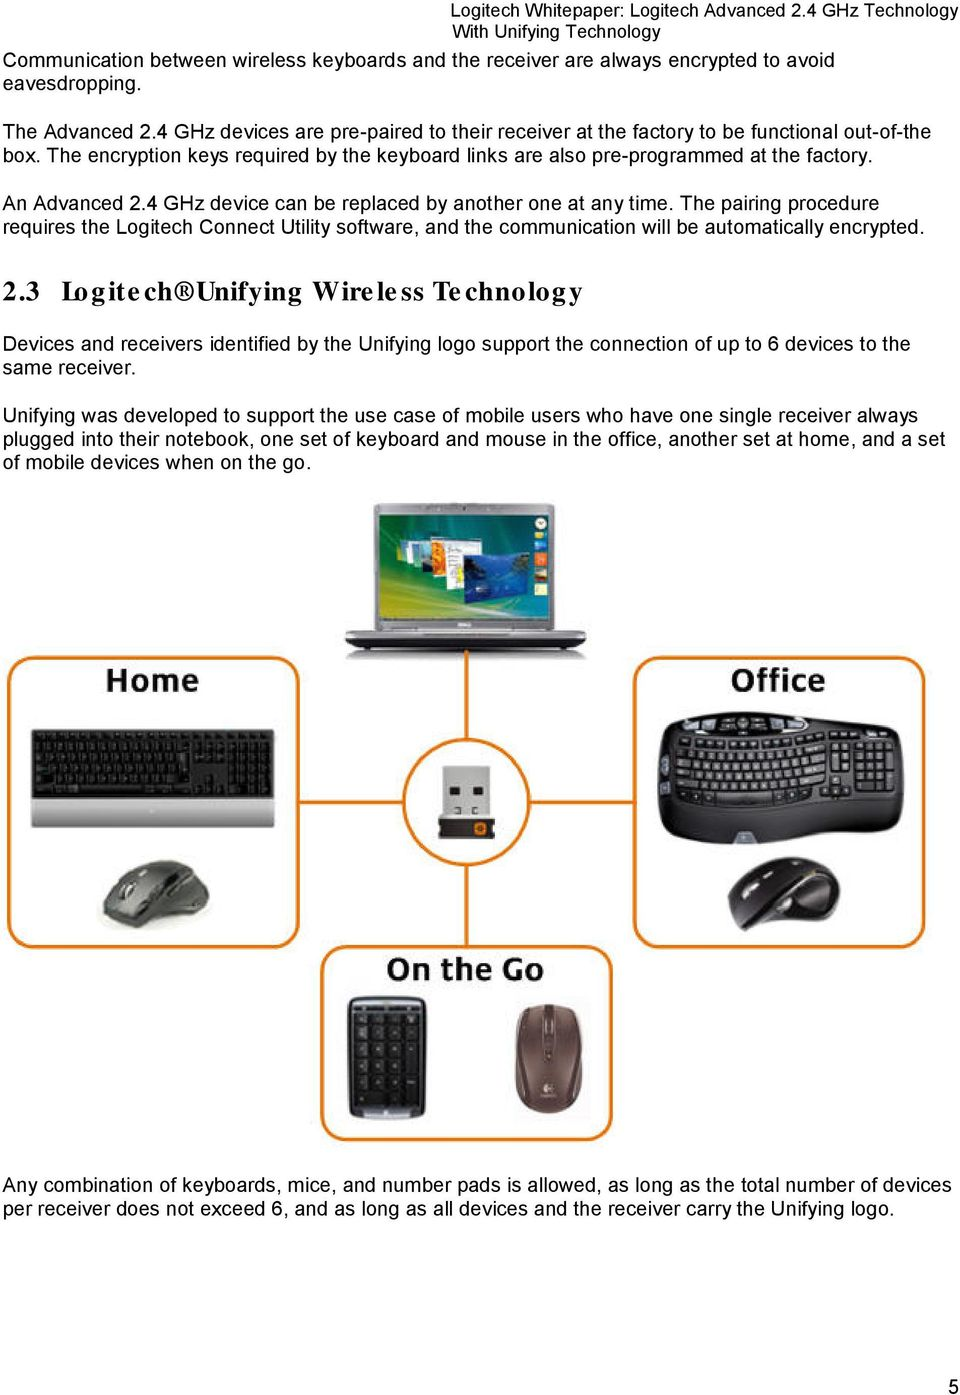 Logitech Advanced 2 4 GHz Technology With Unifying Technology - PDF